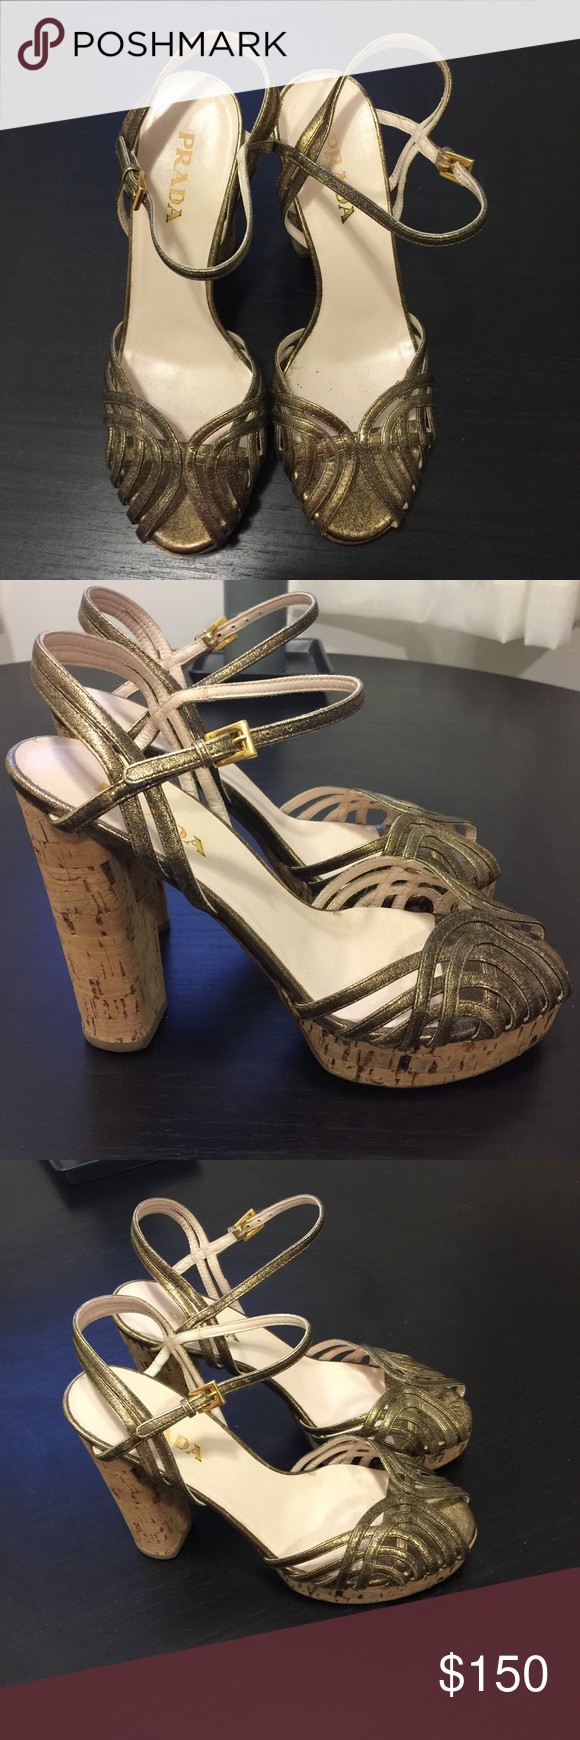 Prada Gold Cork Platforms 37 1/2 Prada Gold Cork Platforms 37.5. I'm an 8 and can wear these fine. Very comfortable considering height. Worn very seldom. Great condition. Purchased at Neiman Marcus for $795. Prada Shoes Platforms